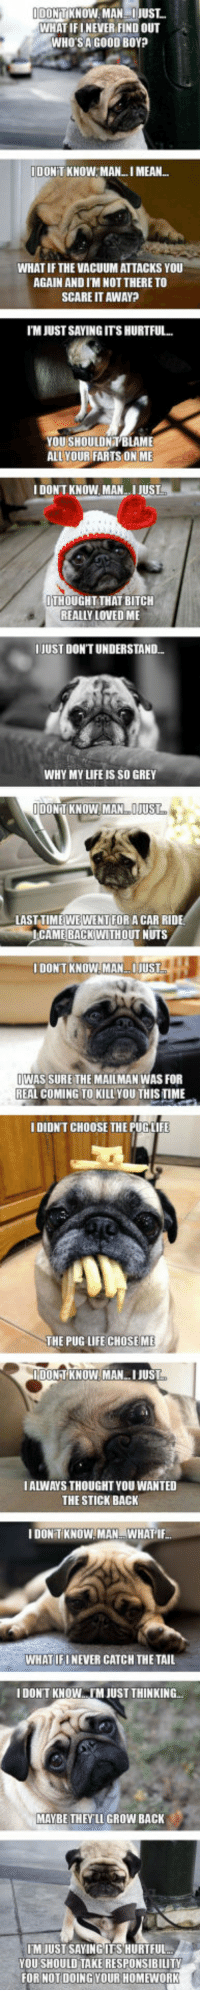 <p>Introspective Pugs.</p>: DONTKNOW. MANJUST  WHAT IFINEVER FIND OUT  WHOSA GO0D BOY  IDONT KNOW MAN.. I MEAN...  WHAT IFTHE VACUUM ATTACKS YOU  AGAIN AND I'M NOT THERE TO  SCARE IT AWAY?  TM JUST SAYING ITS HURTFUL..  YOUSHOULDNT BLAME  ALLYOUR FARTS ON ME  I DONT KNOW MAN  JUSL  ITHOUGHT THAT BITCH  REALLY LOVED ME  IJUST DON'T UNDERSTAND.  WHY MY LIFE IS SO GREY  IIDONTTKNOW.MAN IJUST  LAST TIMEWEWENTFOR A CAR RIDE  CAME BACKWITHOUT NUTS  DONTKNOWMAN.JUST  WAS SURE THE MAILMAN WAS FOR  REAL COMING TO KILL YOU THISTIME  IDIDNT CHOOSE THE PUGLIFE  THE PUG LIFE CHOSEME  DONTKNOW.MAN.I JUST  IALWAYS THOUGHT YOU WANTED  THE STICK BACK  IDON TKNOW MANWHAT'I  WHATIFINEVER CATCH THE TAIL  I DON'T KNOW IM JUSTTHINKING...  MAYBE THEYLLGROW BACK  TM JUSTSAYING ITS HURTFUL.  YOU SHOULD TAKERESPONSIBILITY  FOR HOTDOING YOUR HOMEWORK <p>Introspective Pugs.</p>